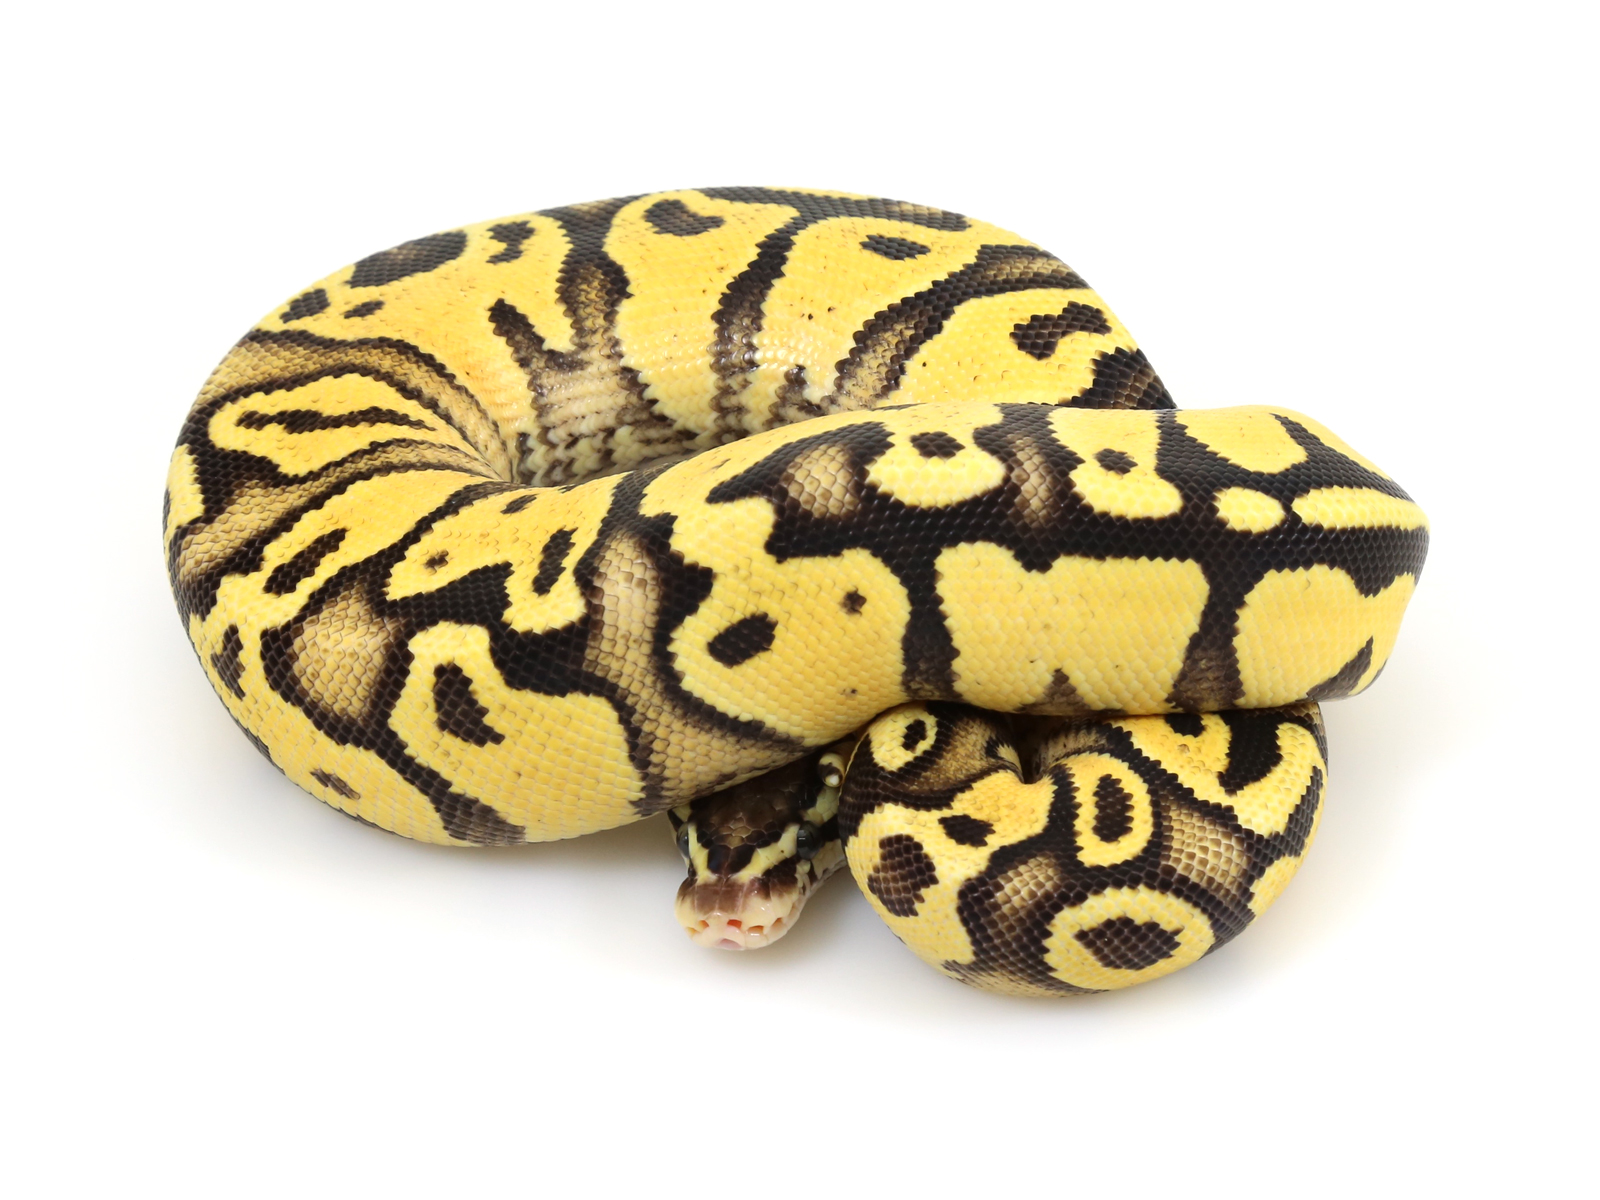 Yellow Belly Firefly